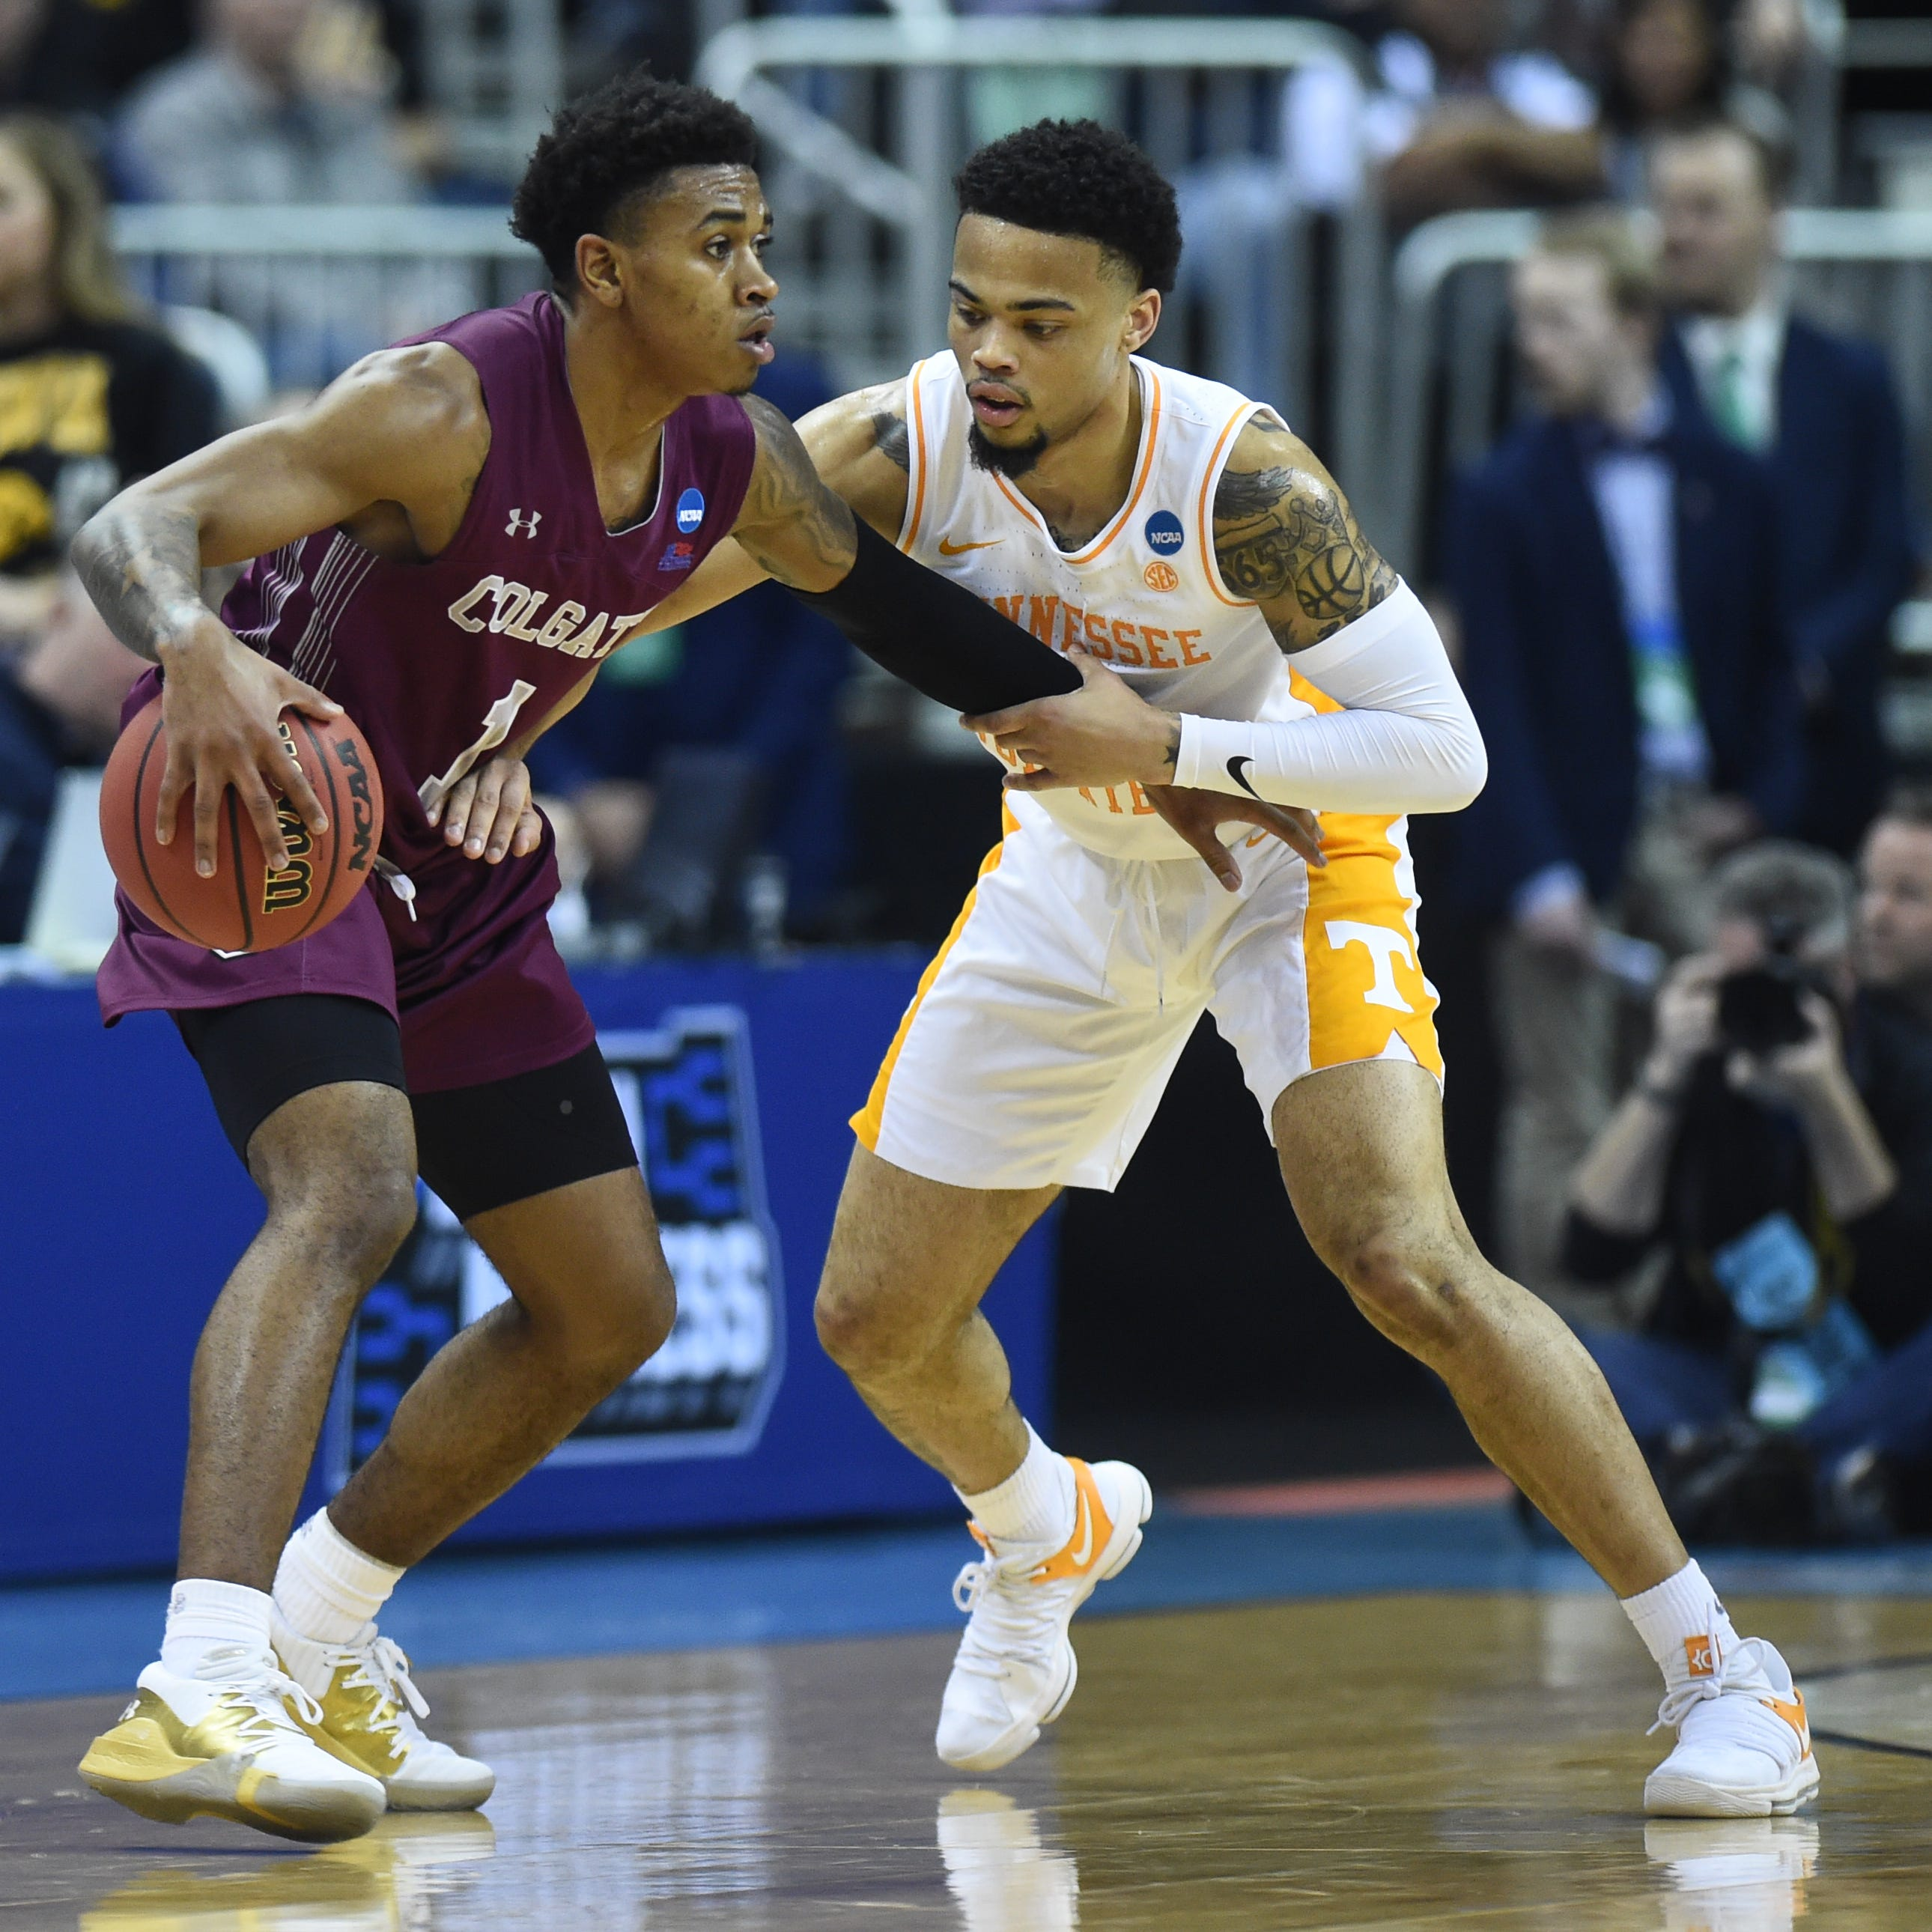 NCAA Tournament: Colgate fans didn't sound smart chanting 'overrated' at Tennessee